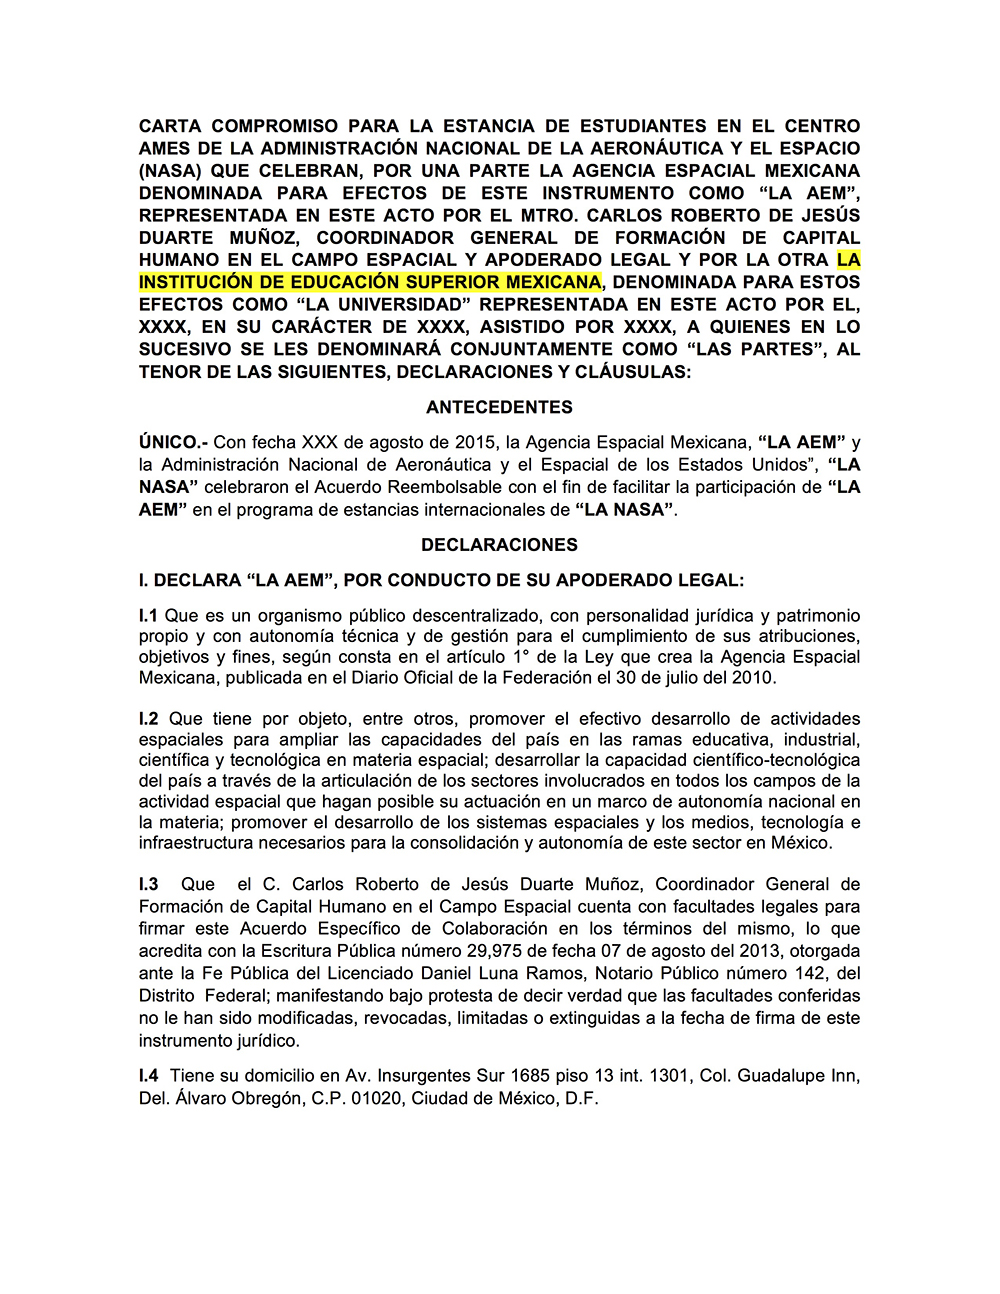 documento Anexo cinco Carta compromiso institucional para dosmildiezysiete en formato word editable